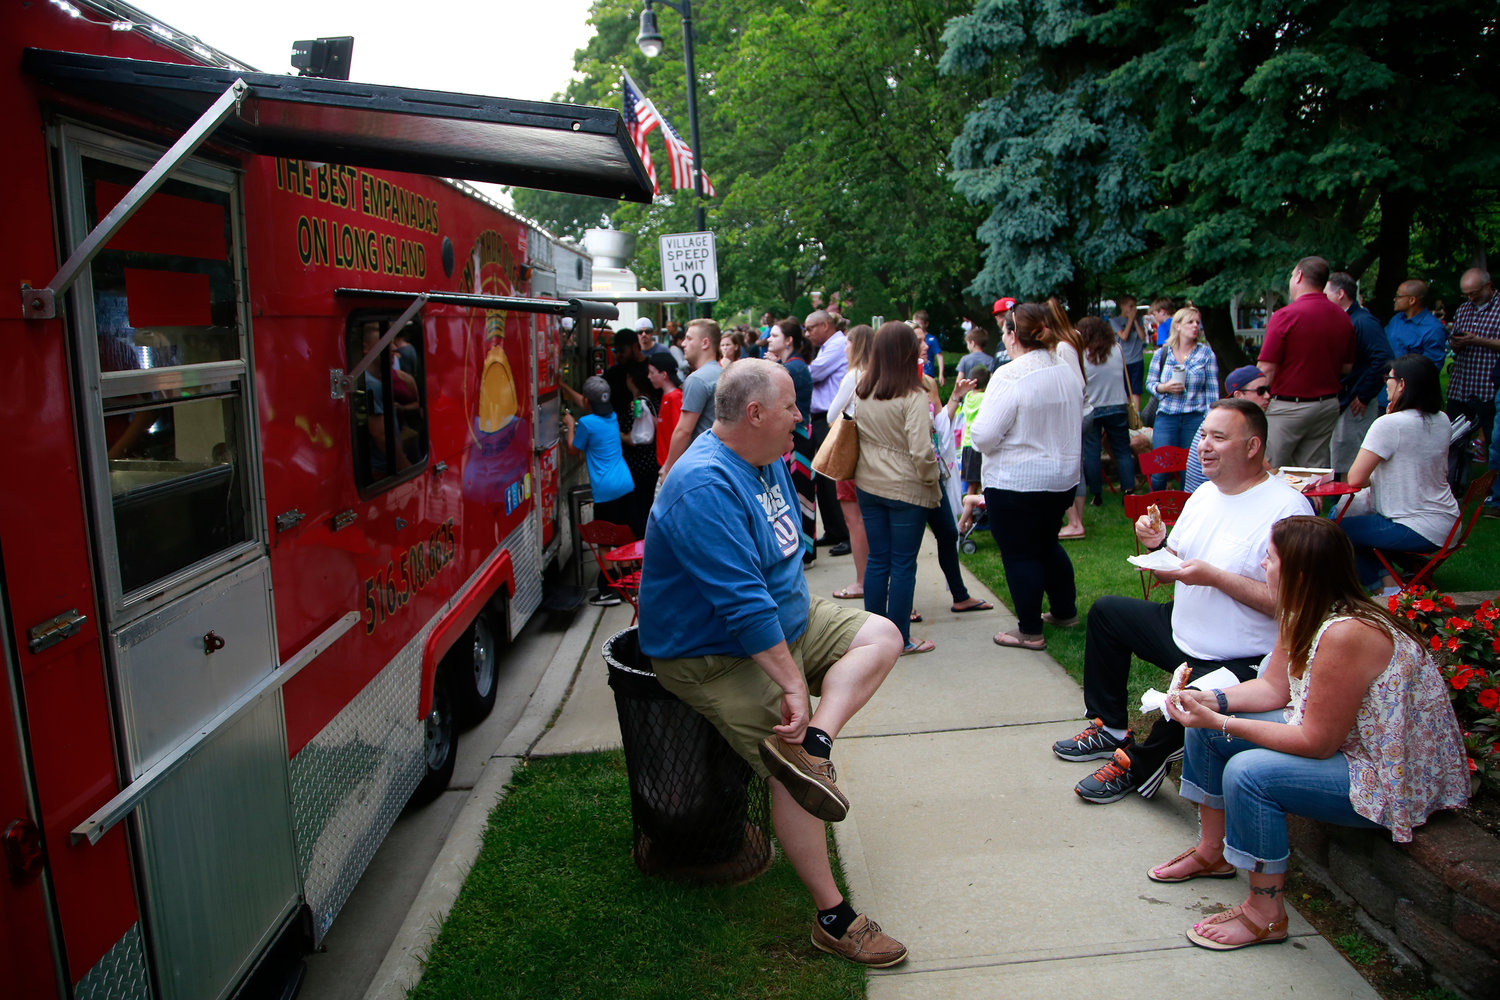 Crowds of people waited on lines for Empanada Queen and Neapolitan Express Pizza food trucks.